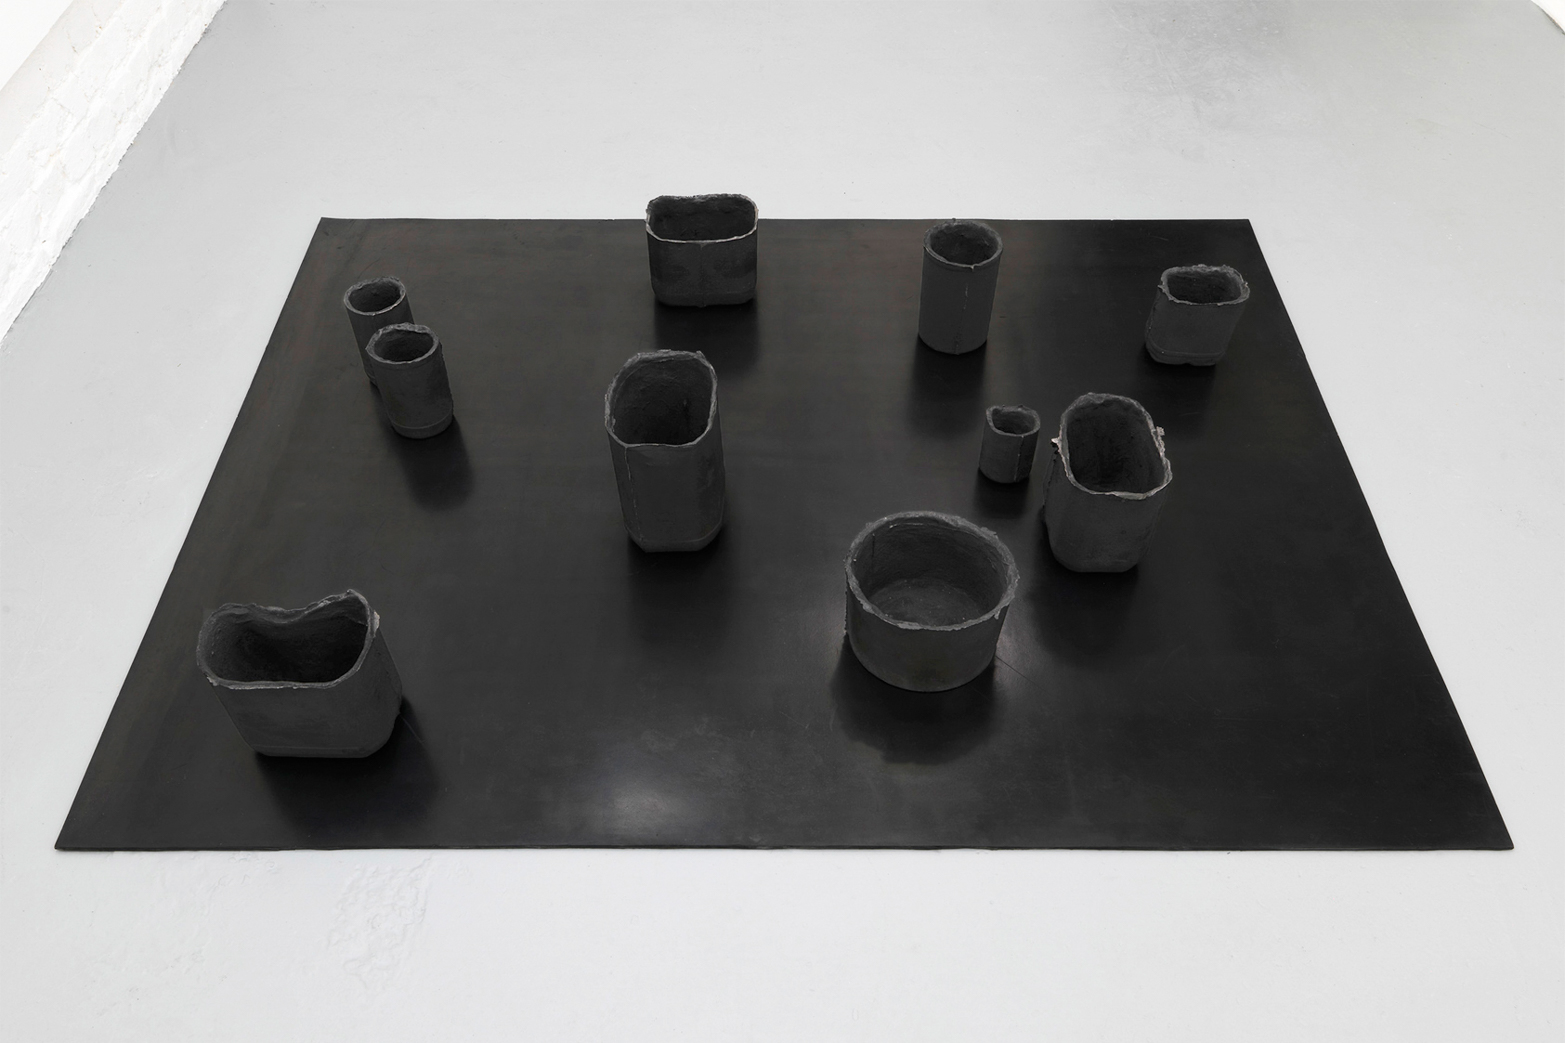 Andrea Zucchini, Untitled (As Above, So Below series), 2014, cast iron, testosterone, vulcanised rubber. Tenderpixel.